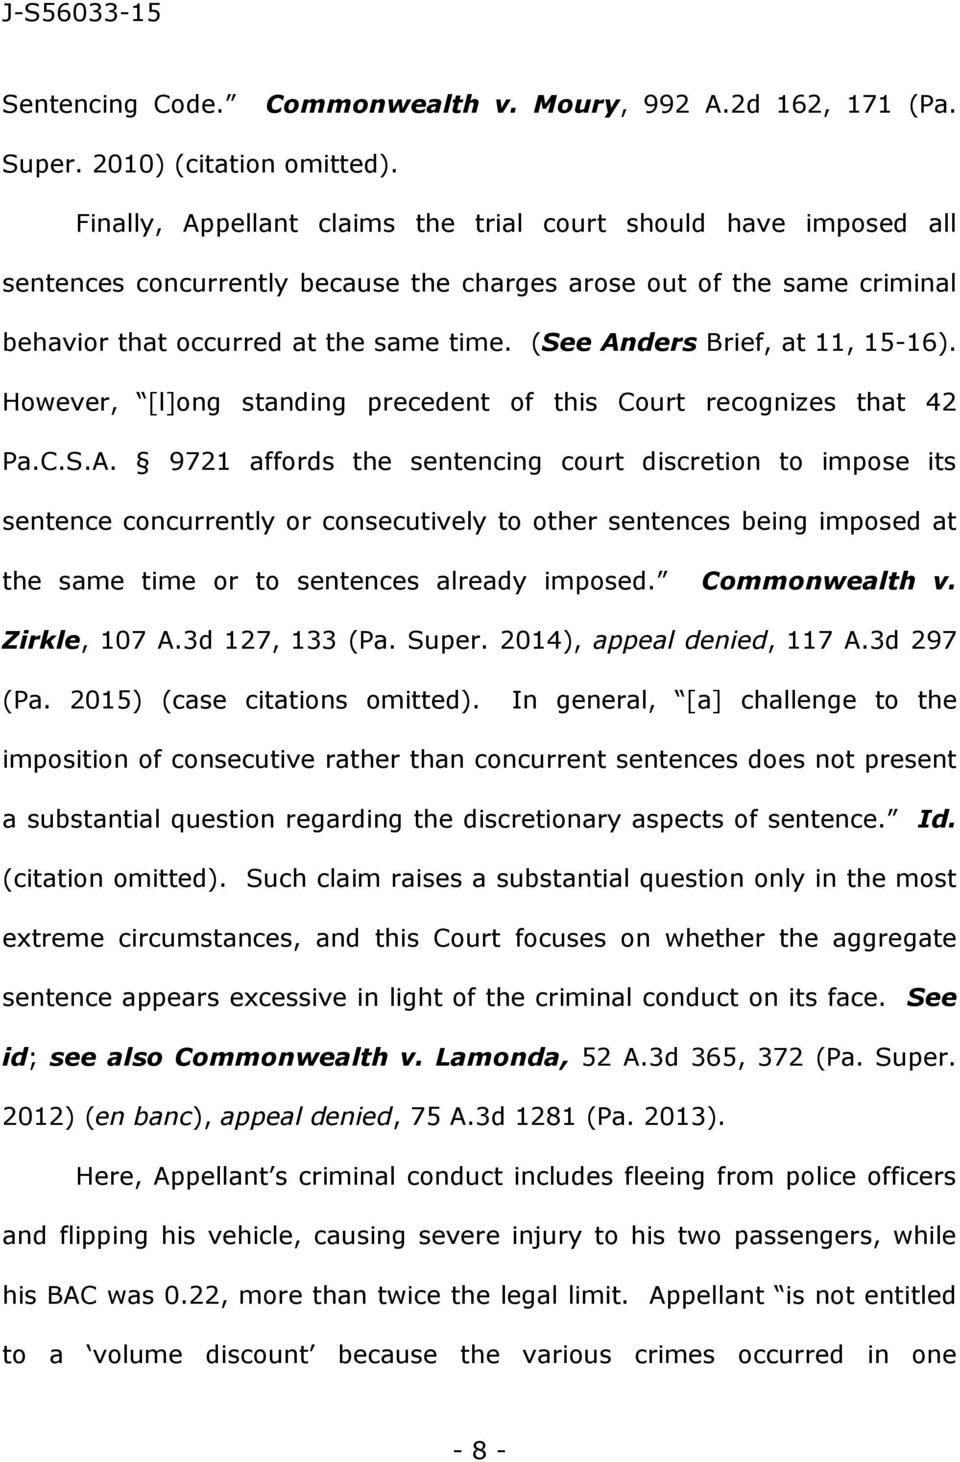 (See Anders Brief, at 11, 15-16). However, [l]ong standing precedent of this Court recognizes that 42 Pa.C.S.A. 9721 affords the sentencing court discretion to impose its sentence concurrently or consecutively to other sentences being imposed at the same time or to sentences already imposed.